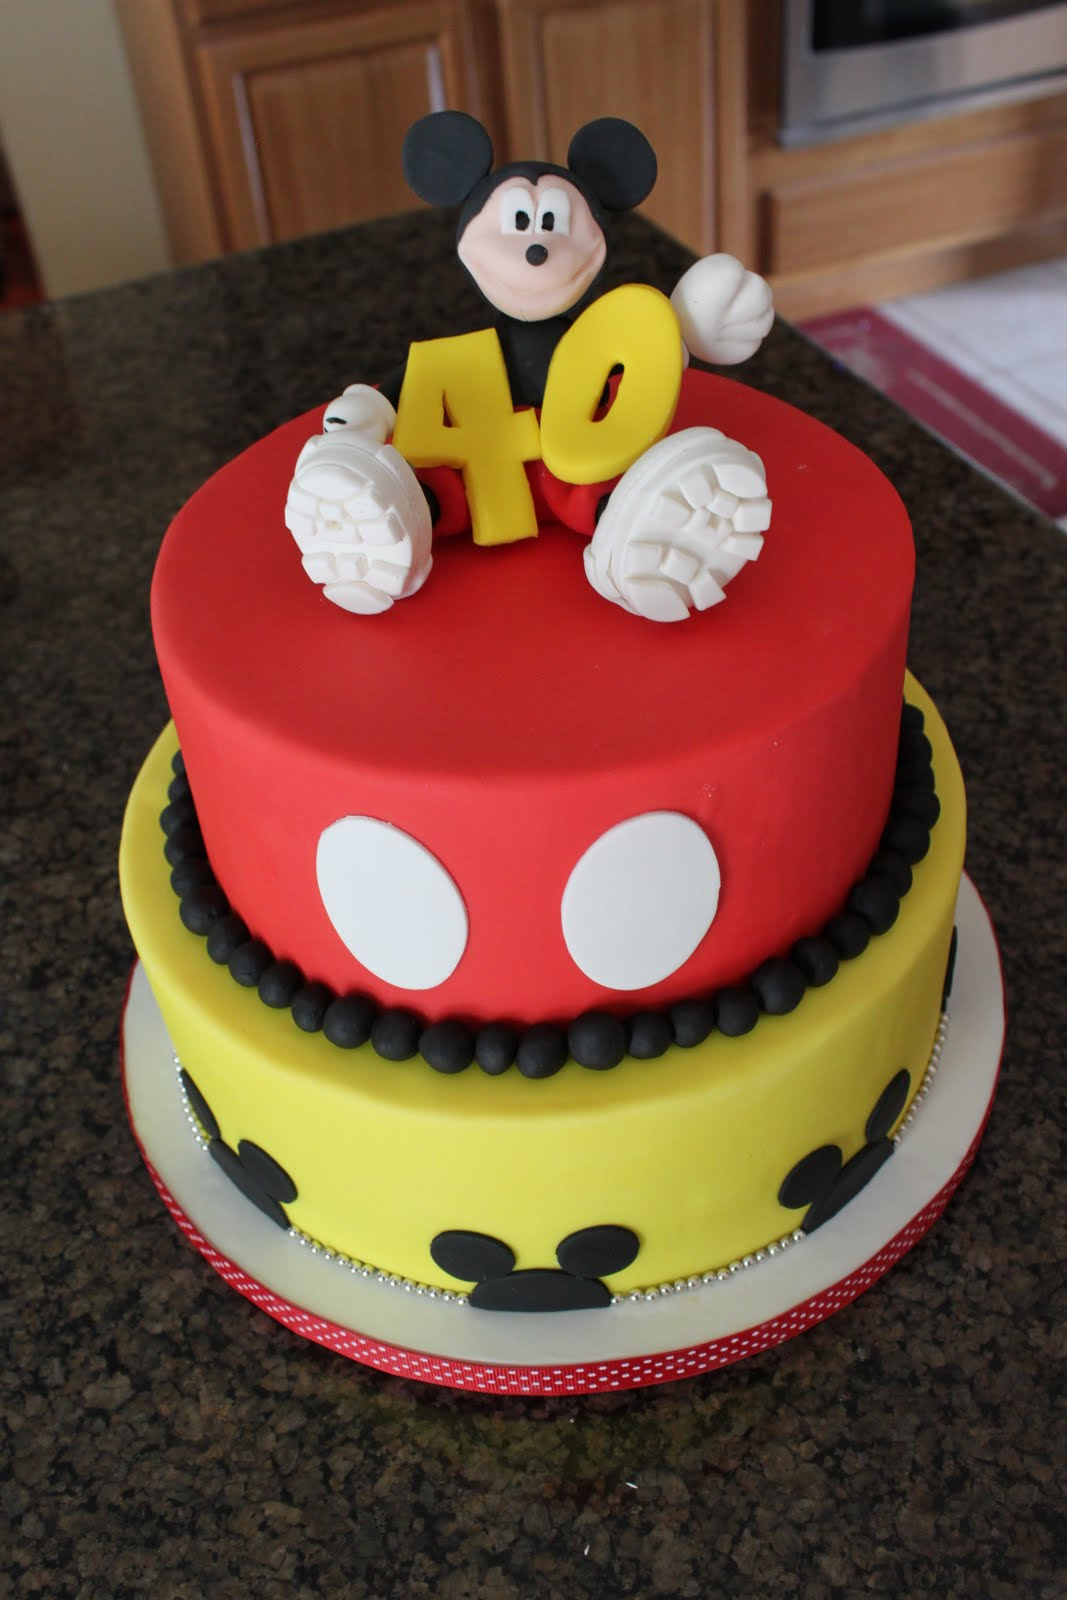 Groovy Mickey Mouse Cake Decoration Ideas Little Birthday Cakes Personalised Birthday Cards Bromeletsinfo